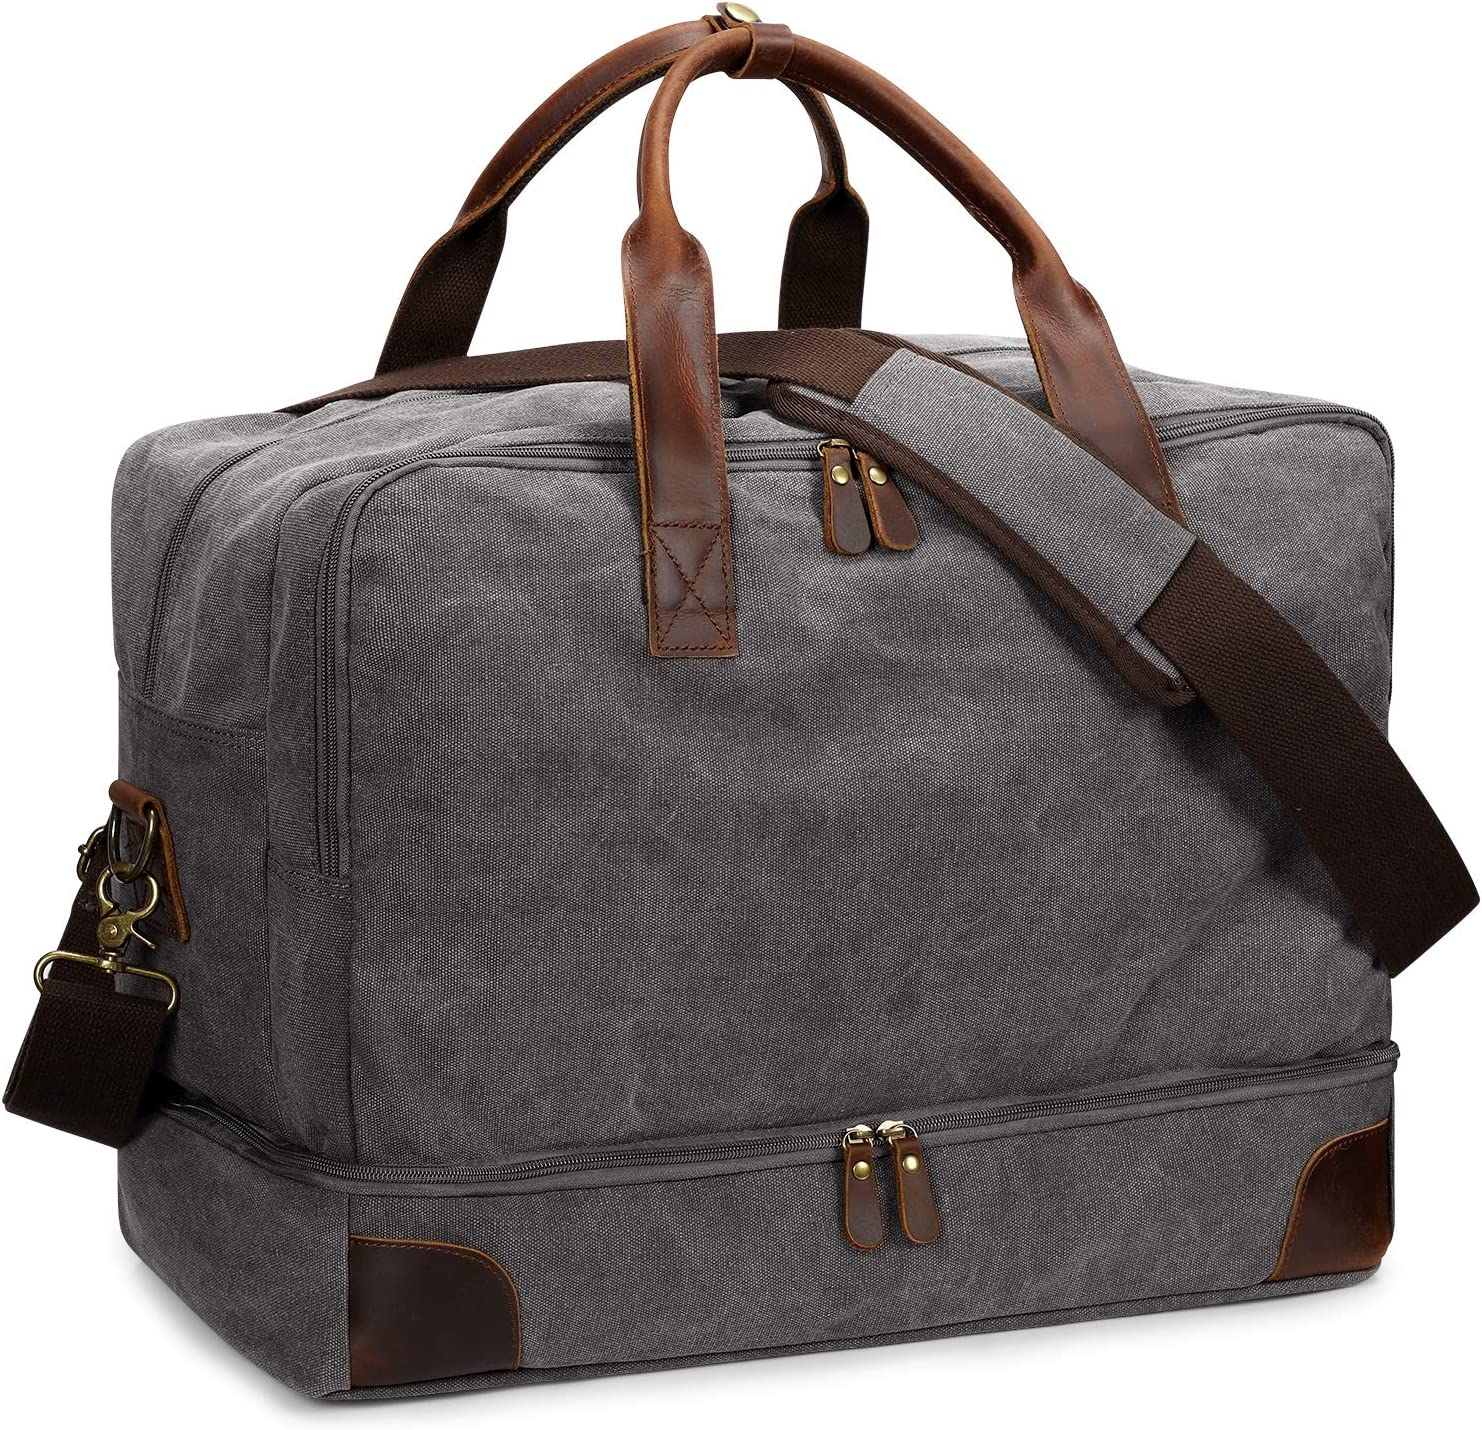 S-ZONE Mens Canvas Duffel Bag Travel Weekend Overnight Bag with Shoes Laptop Compartment 2.0 Version (Light Grey)